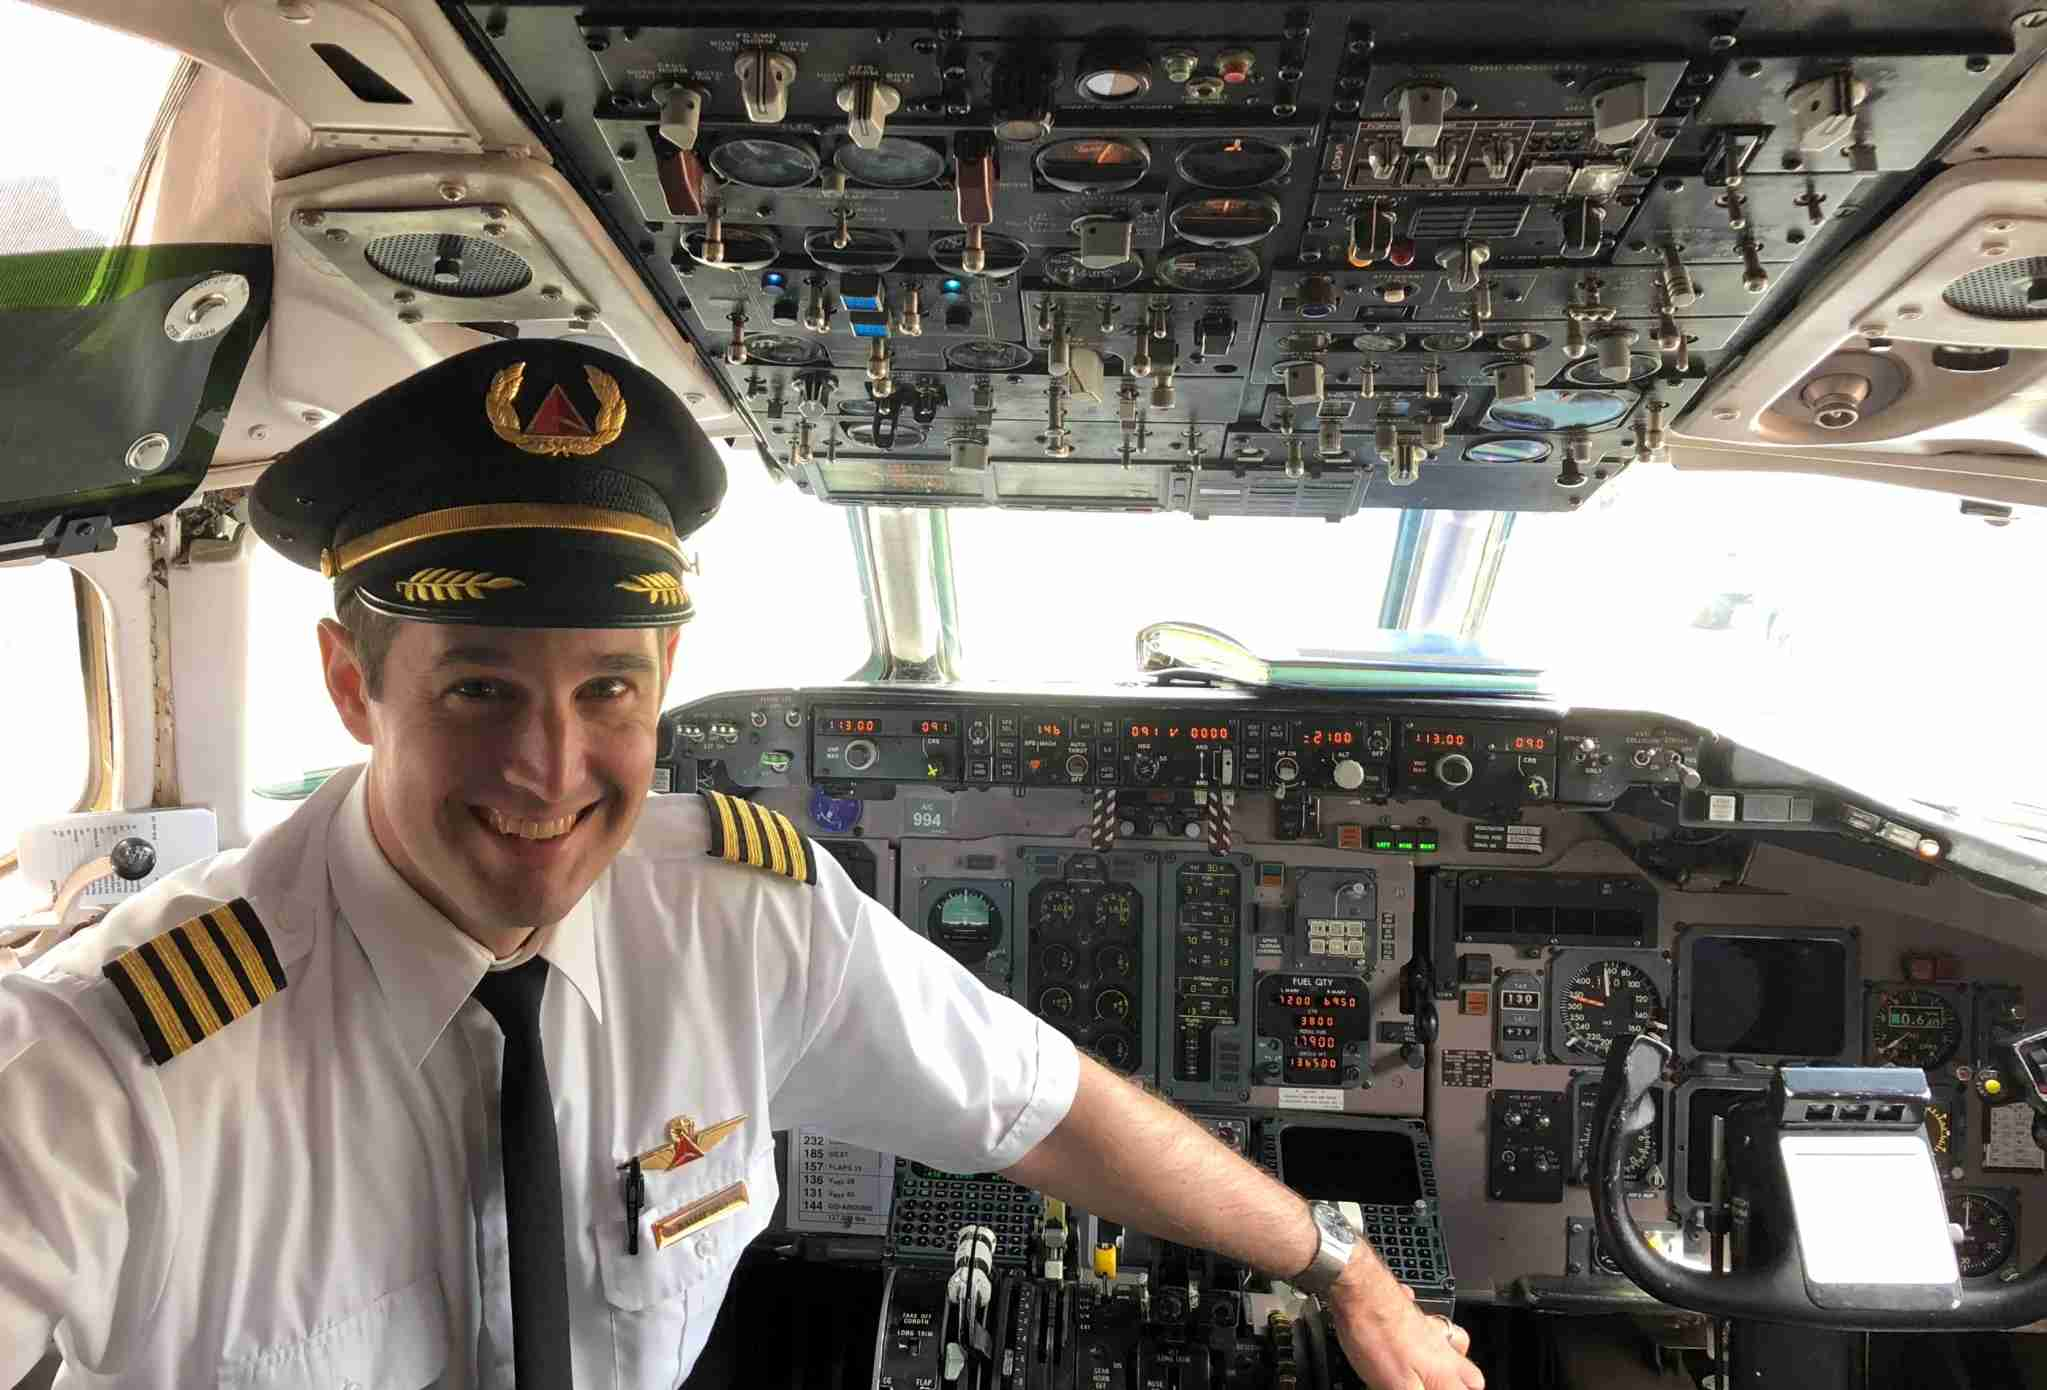 Captain Walter Judy on the flight deck of a Delta MD-88 (Image courtesy of Walter Judy)